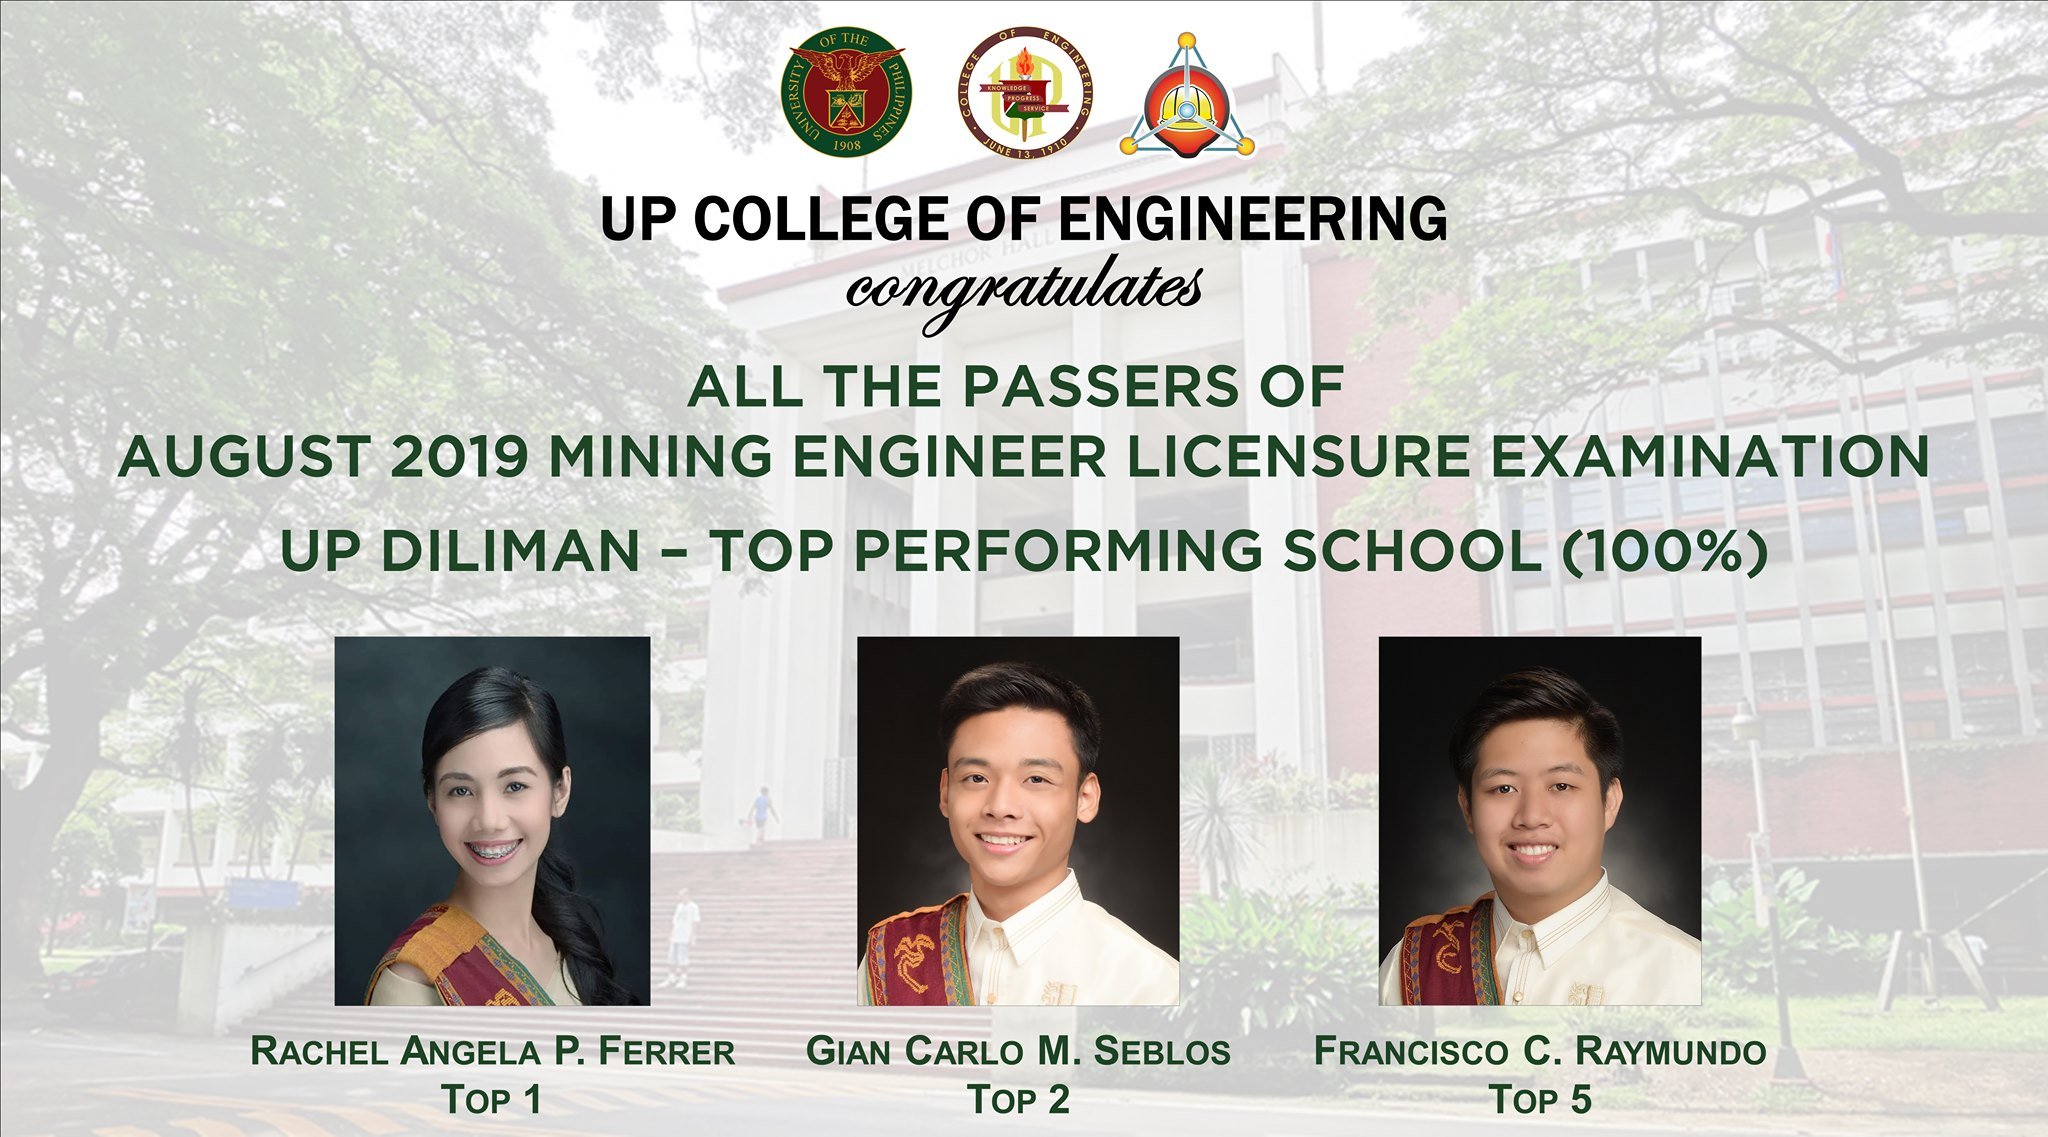 UP CoE Tops Mining Engineering Board Exams